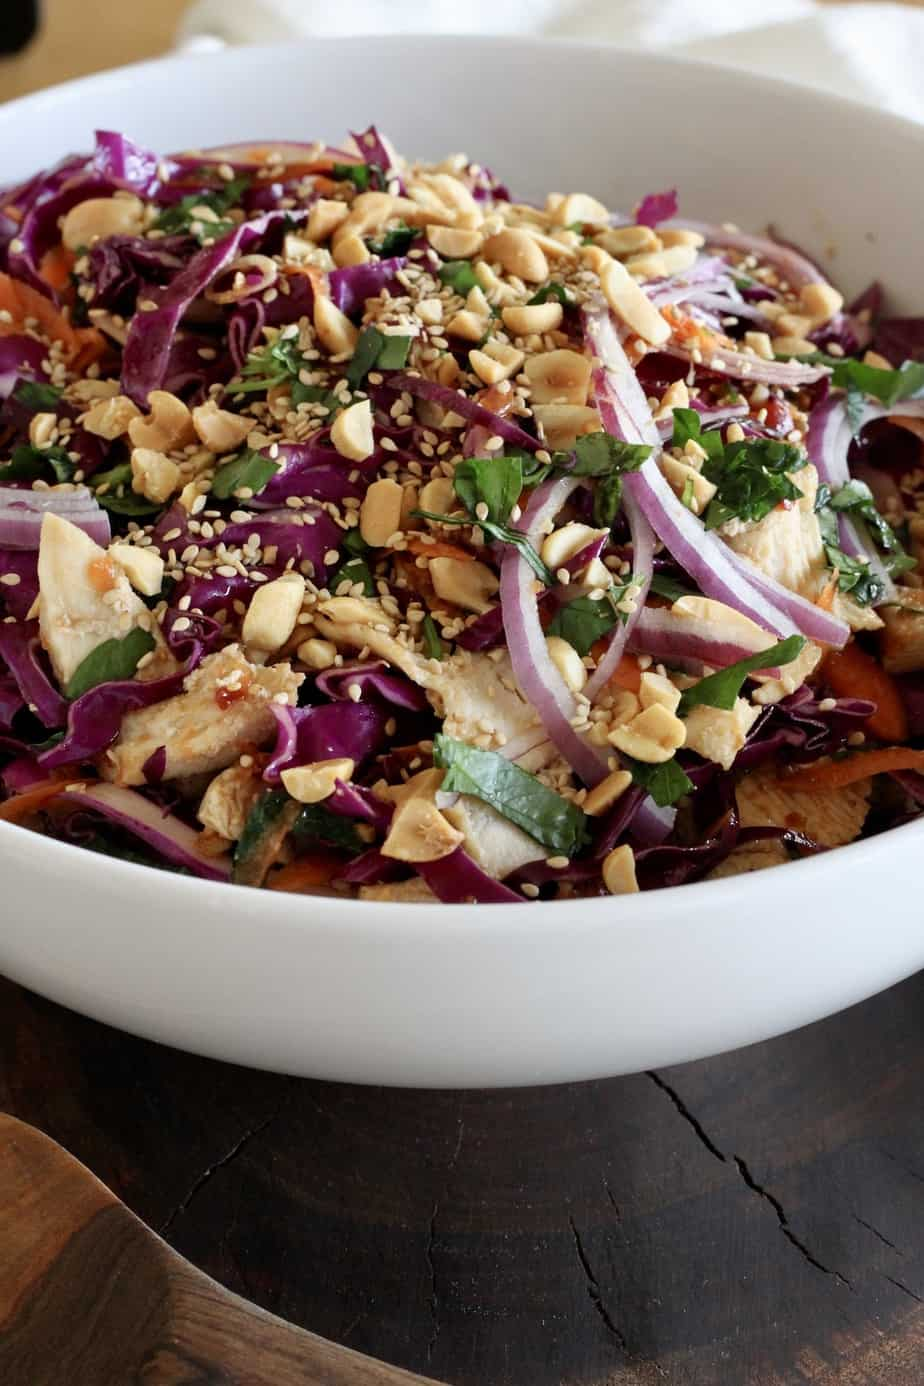 bowl of red cabbage, carrots and chicken slaw